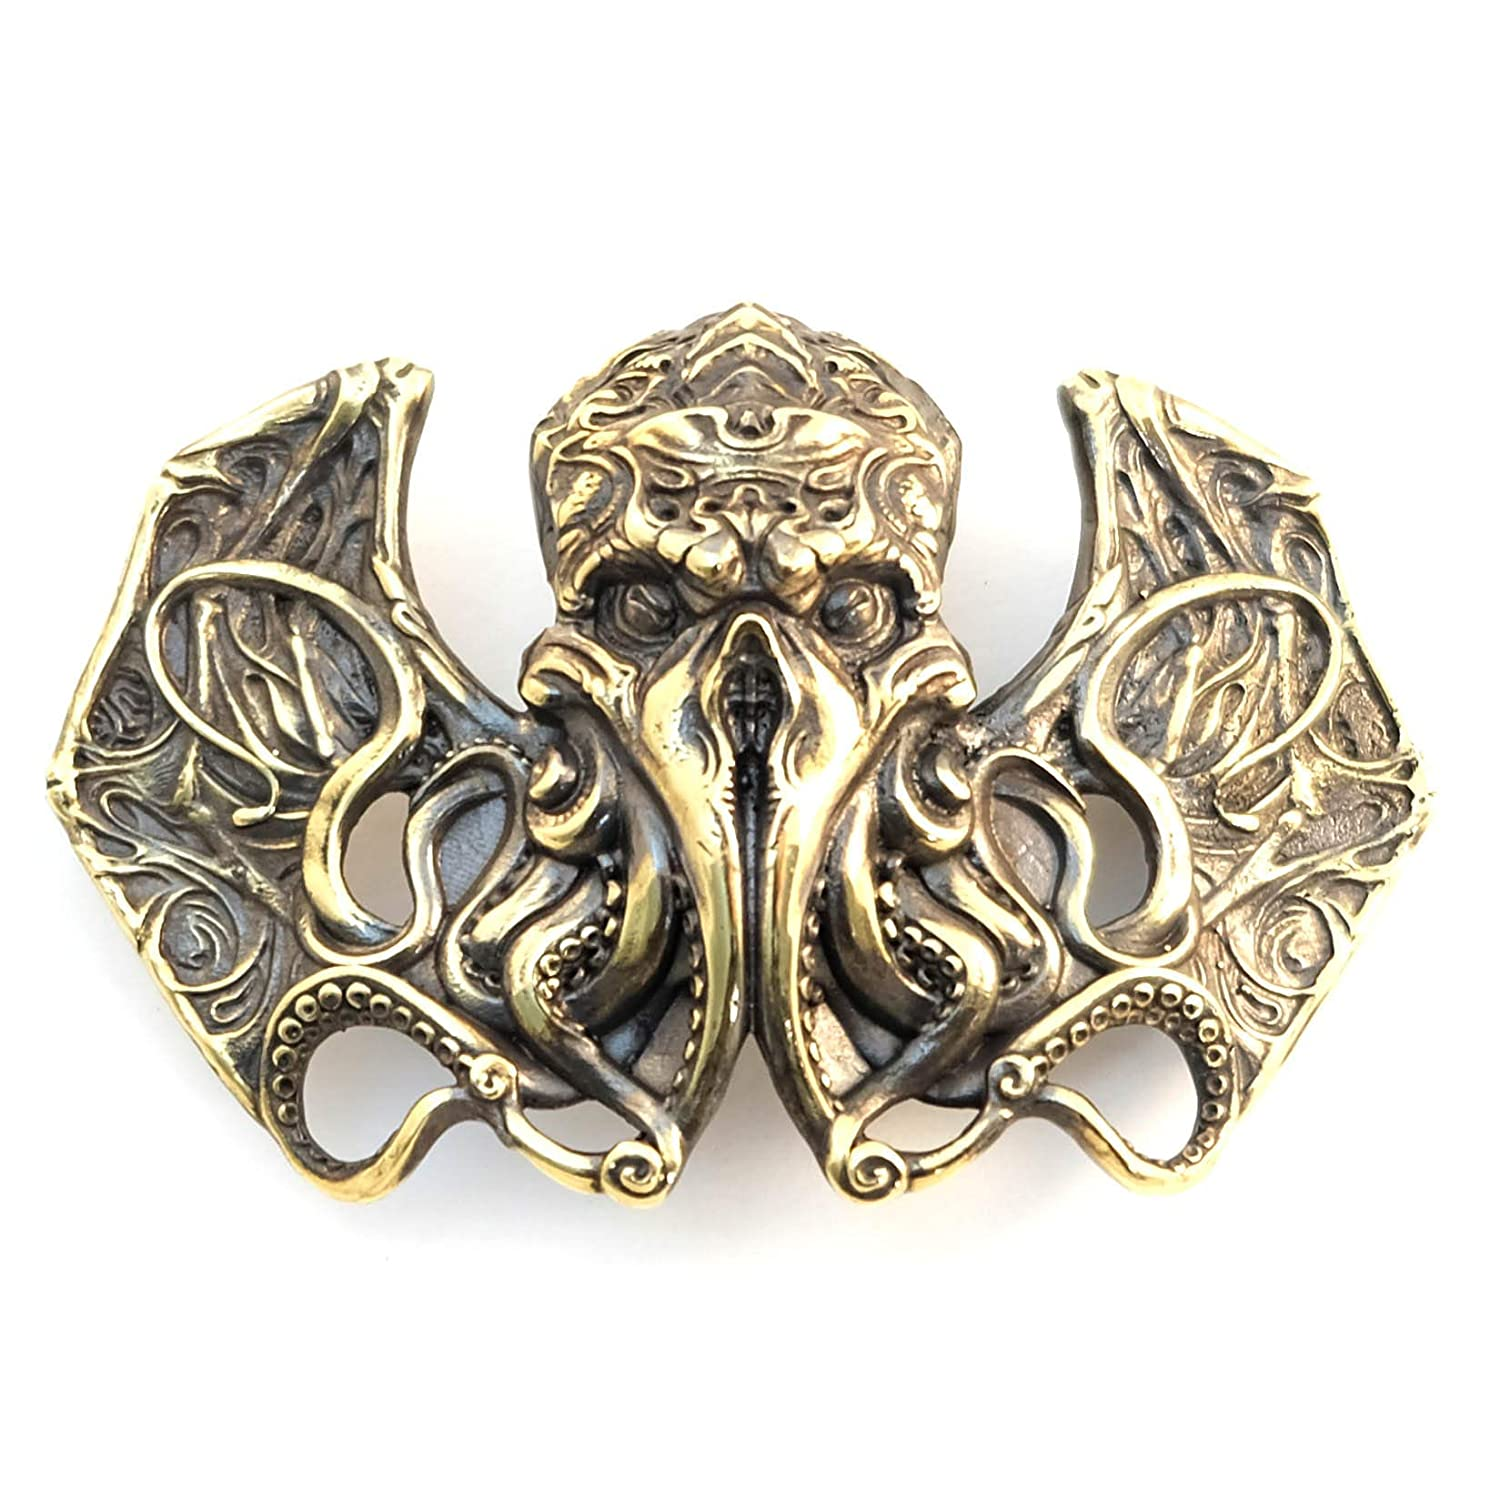 Cthulhu belt buckle, Handmade Davy Jones solid brass belt buckle